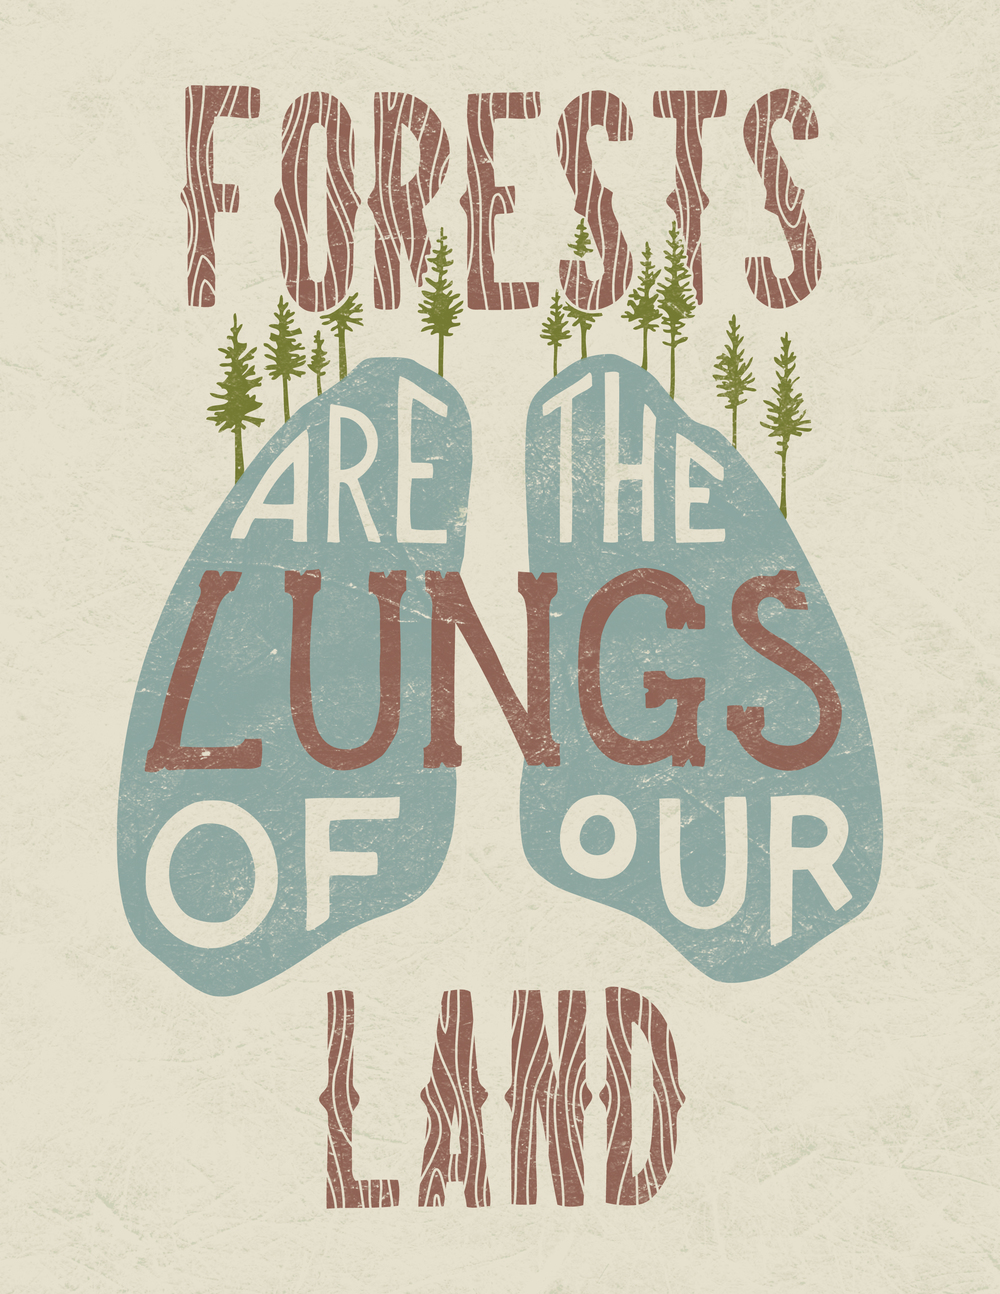 Forests are the Lungs of our Land